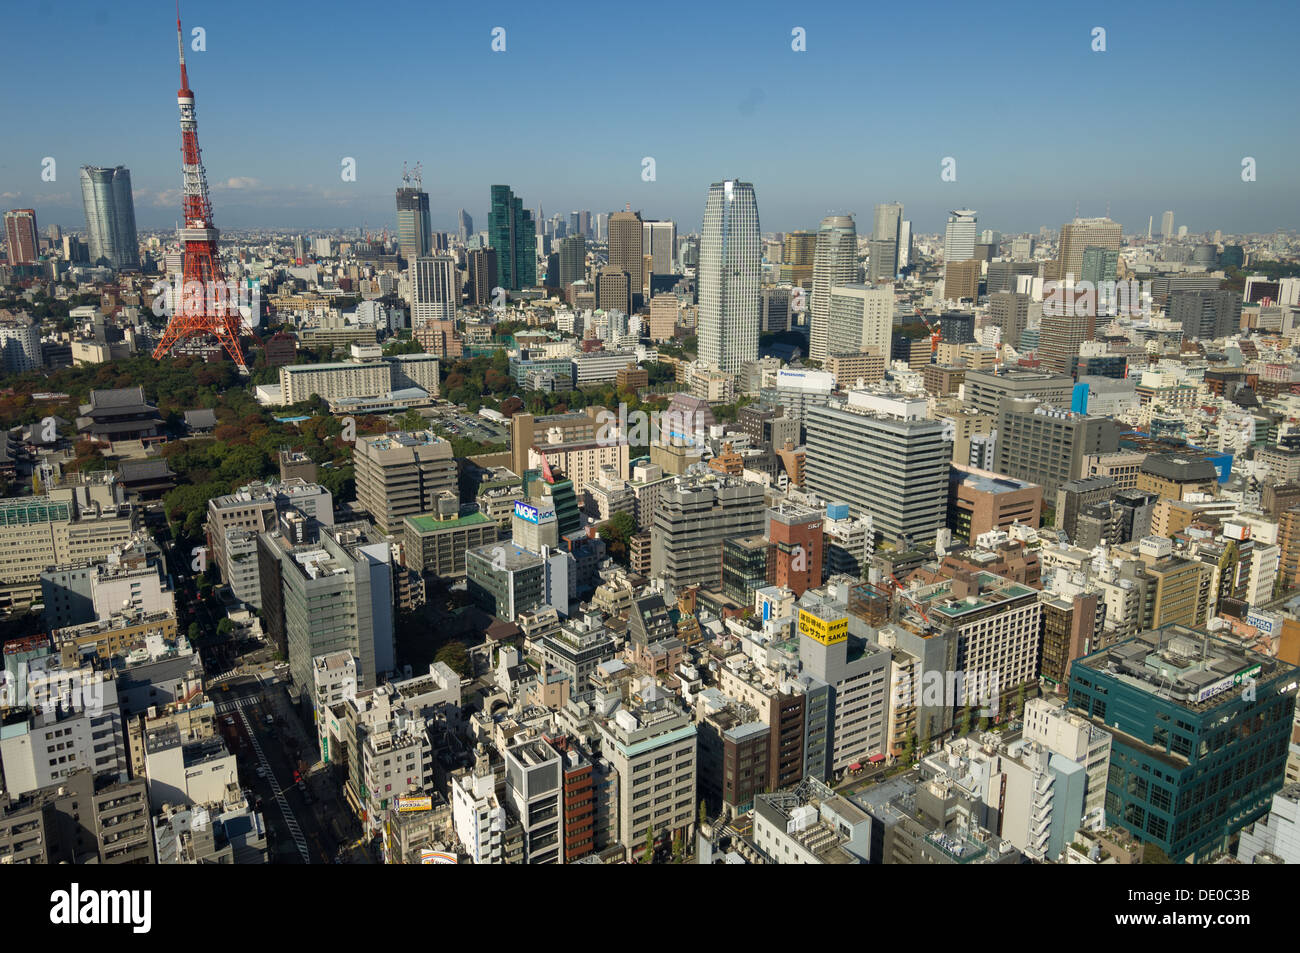 Cityscape of Tokyo showing the red Tokyo Tower, seen from the Observation Deck of the World Trade Center, Tokyo, Japan - Stock Image